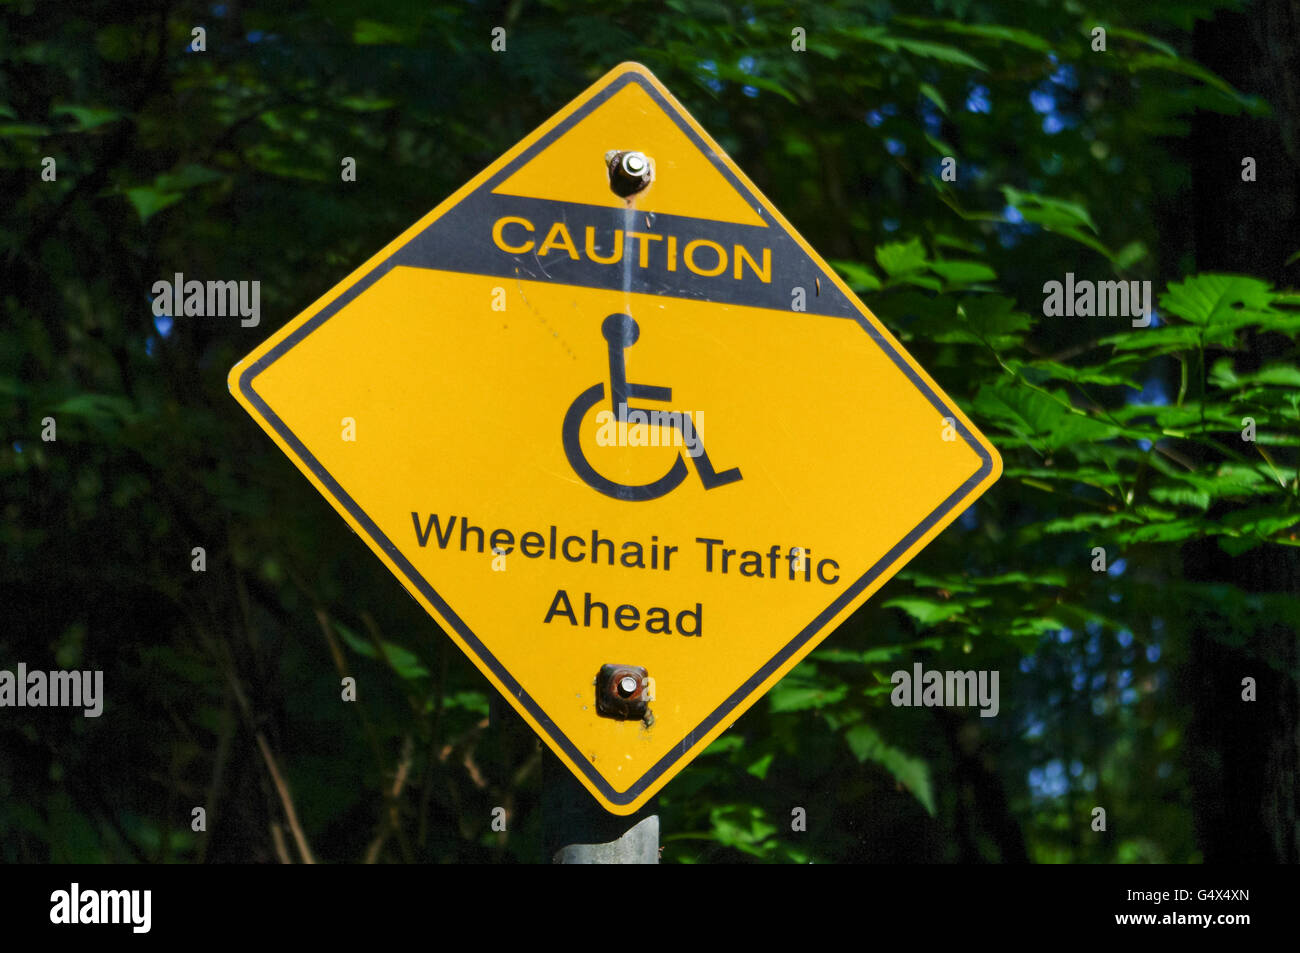 """Yellow warning sign """"Caution: Wheelchair Traffic Ahead"""" with pictogram in Canada. Stock Photo"""